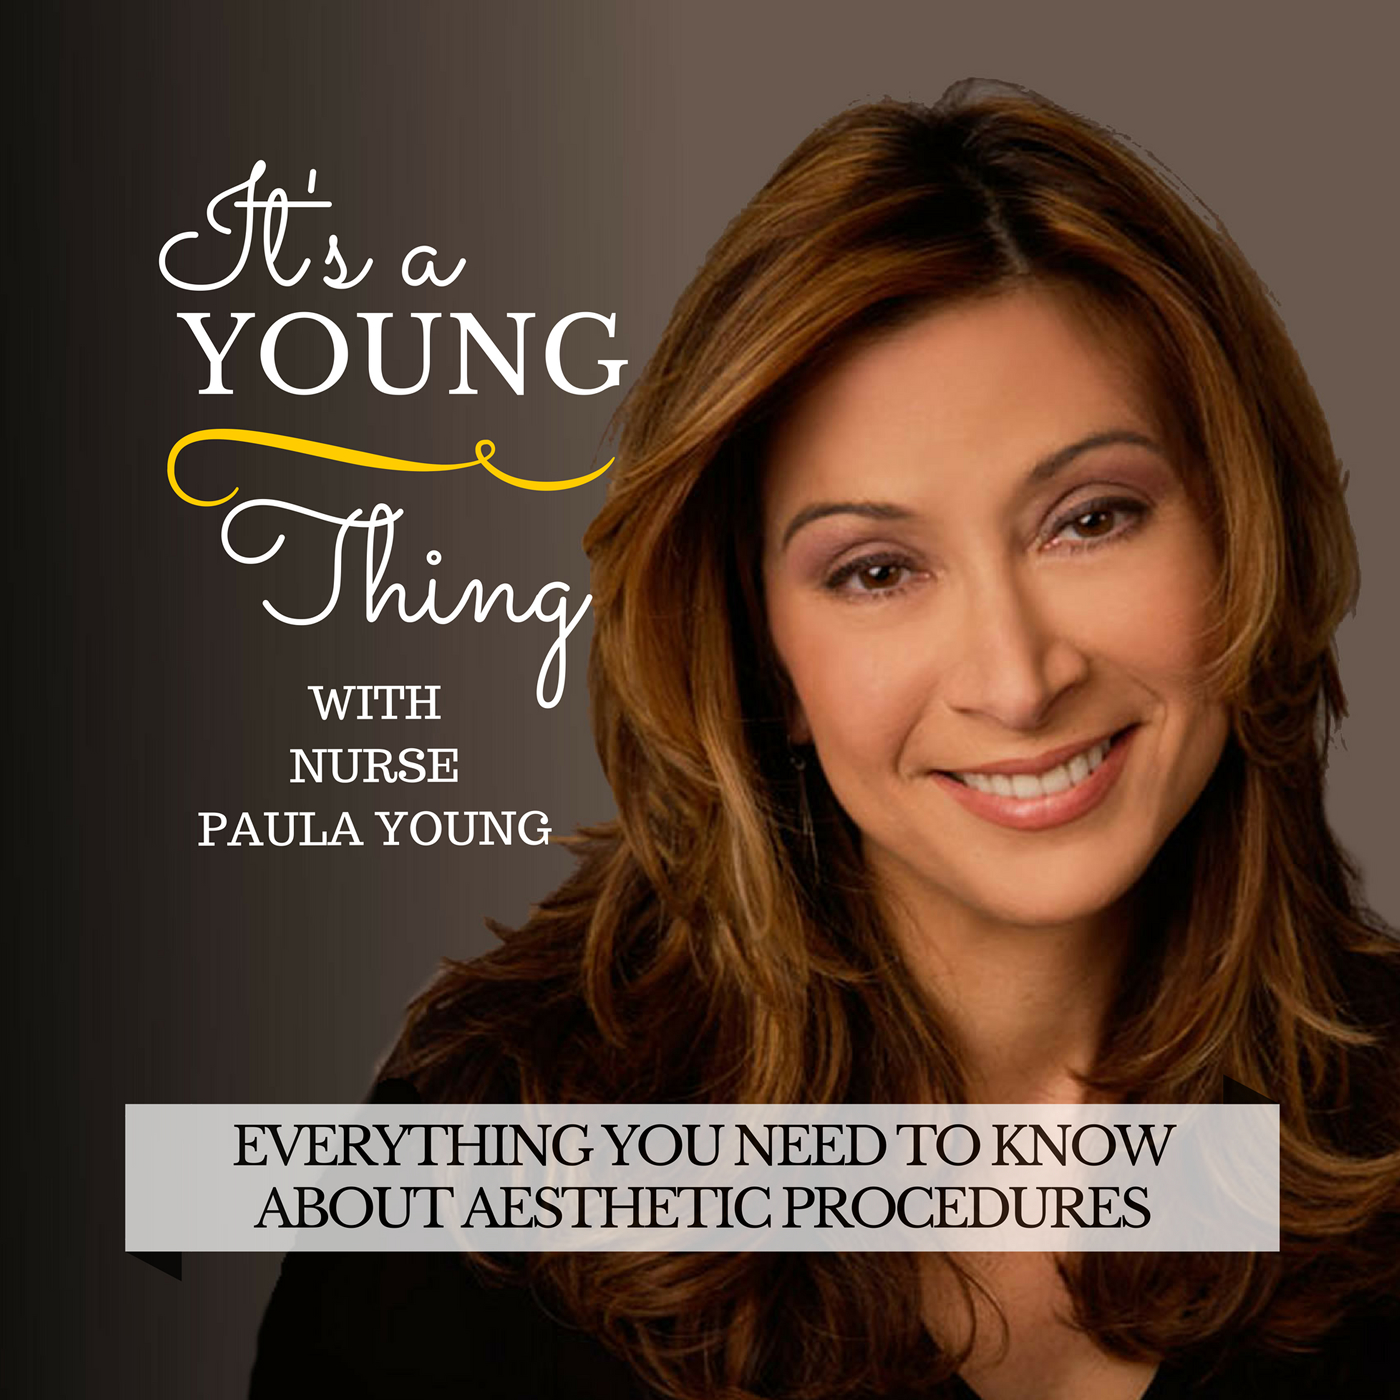 Ep 003 Tell Me About Selfie Surgeries